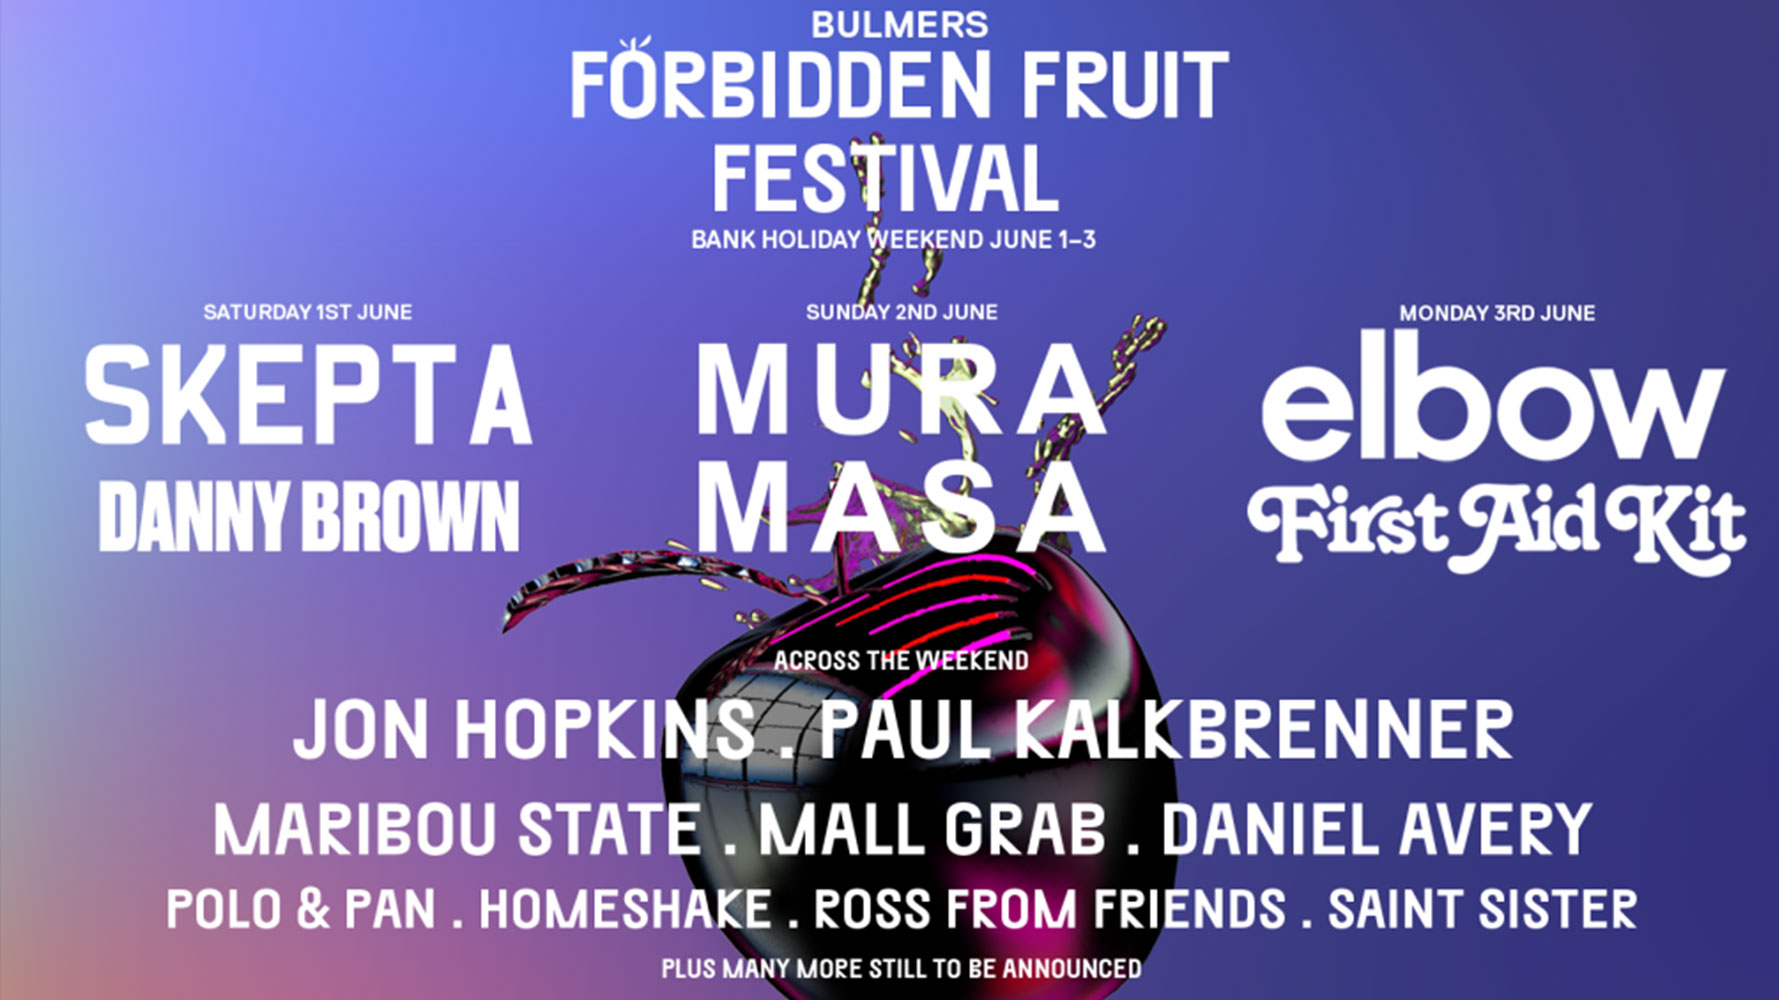 Forbidden Fruits 2019